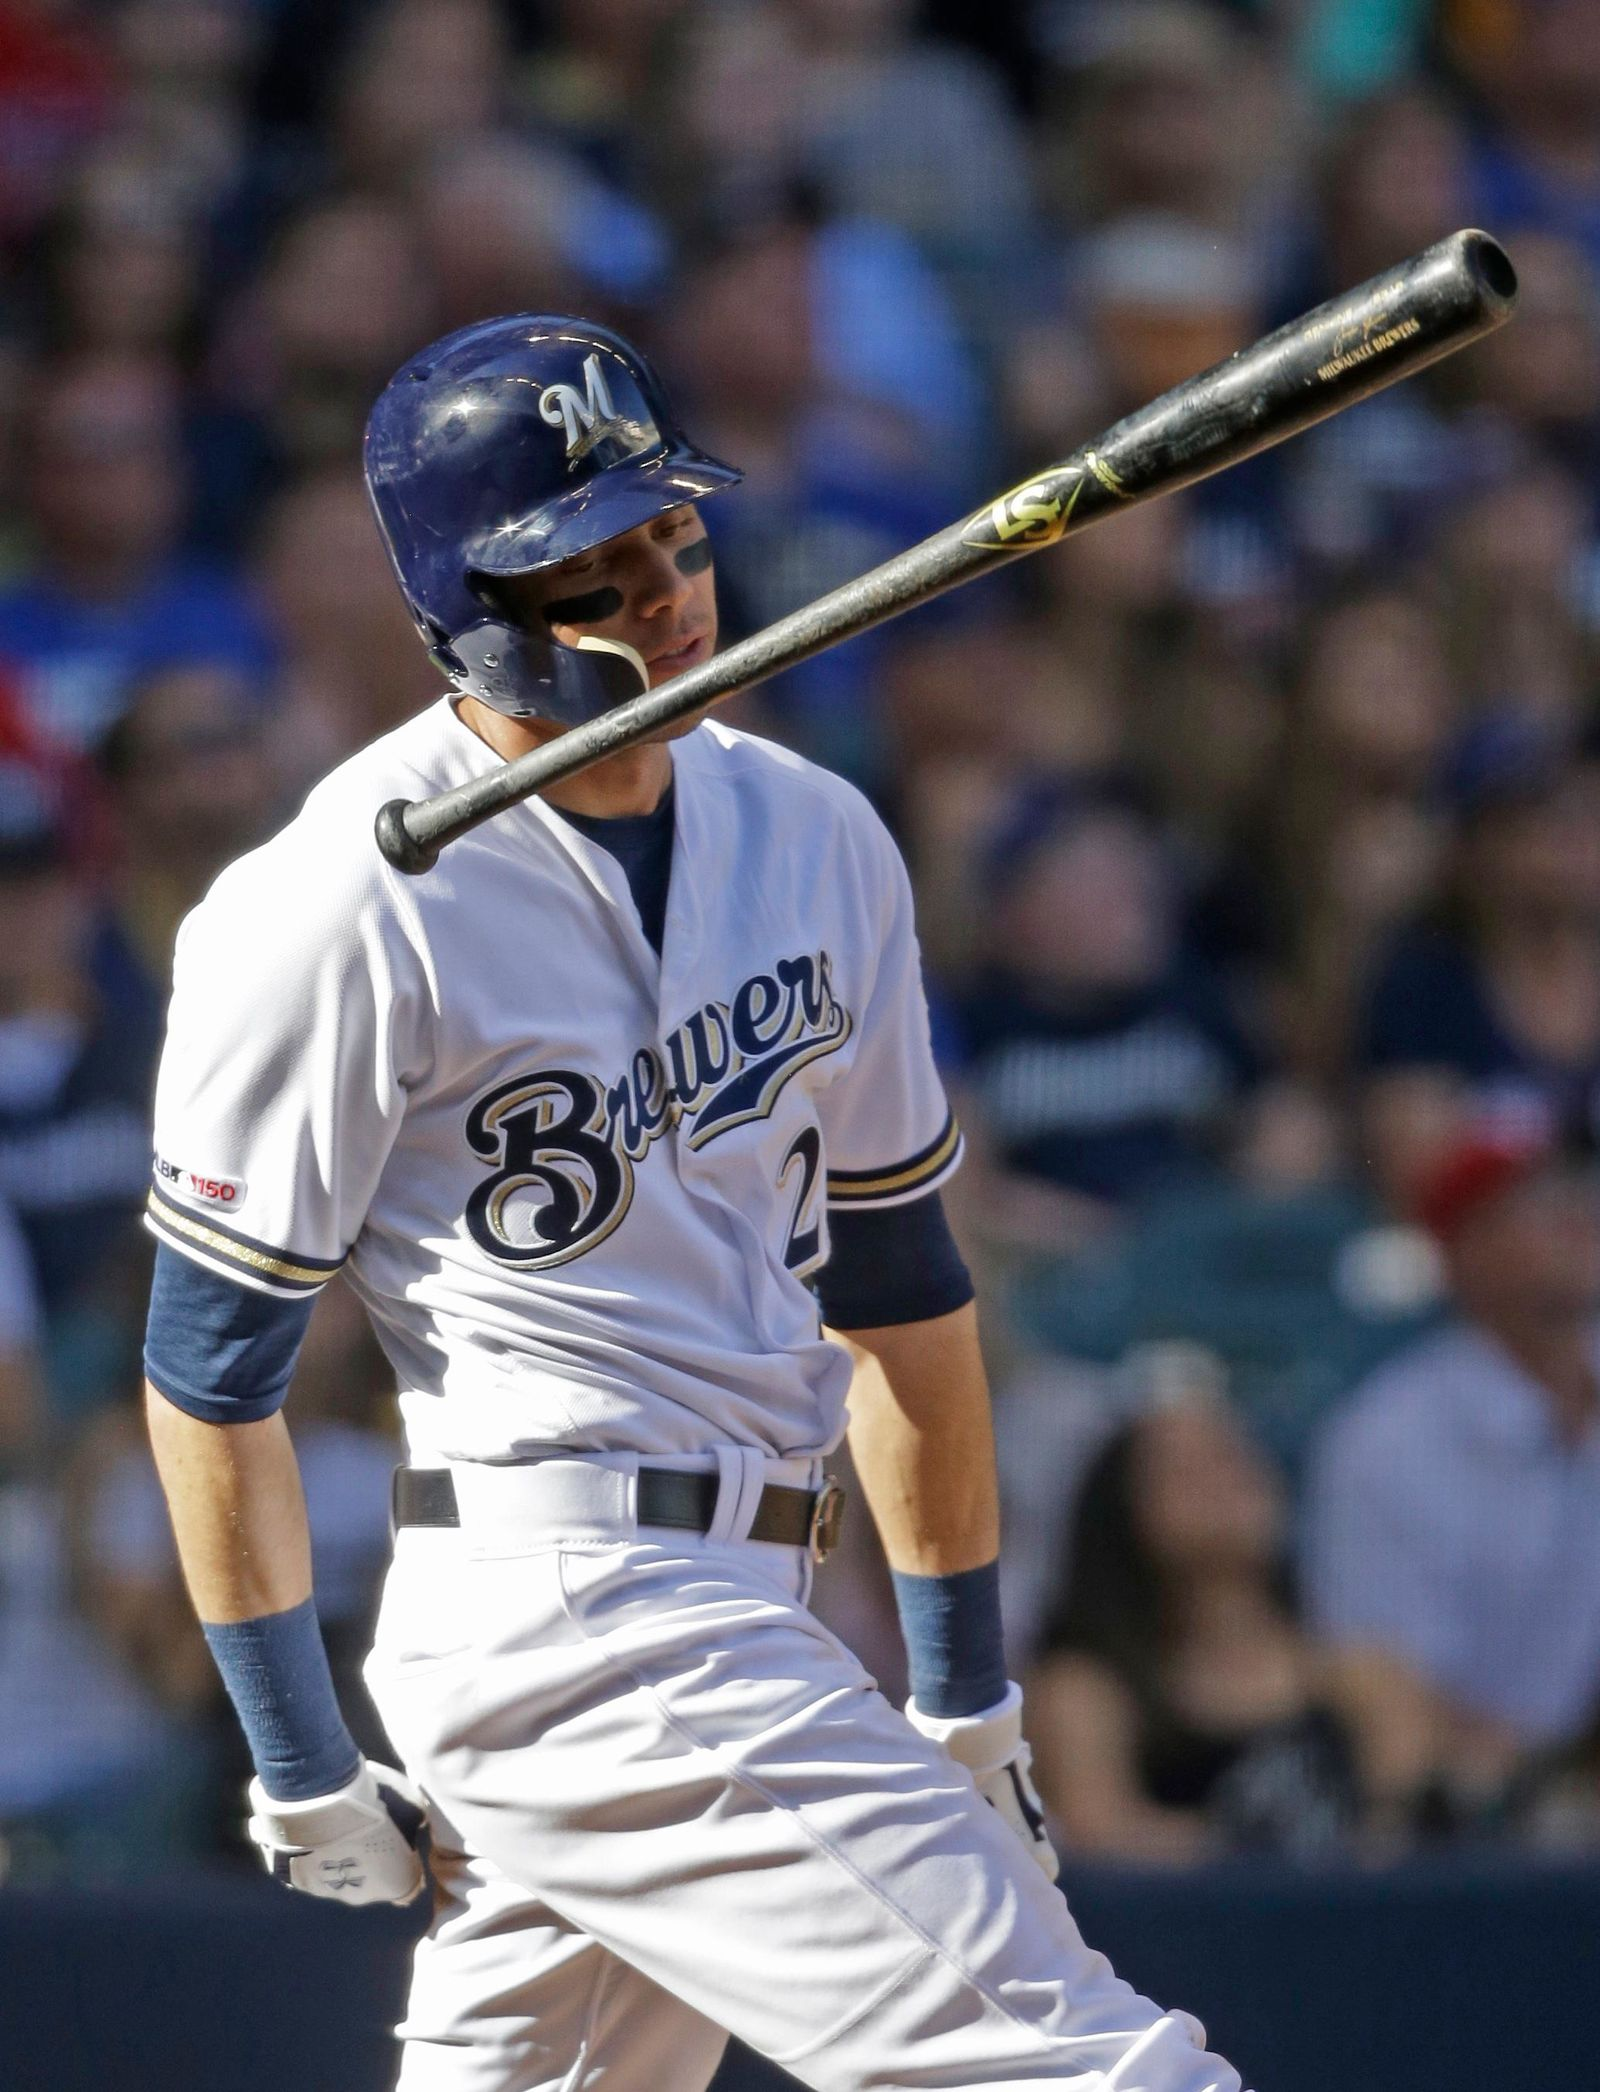 Milwaukee Brewers' Christian Yelich reacts to his fly-out during the seventh inning of a baseball game against the Philadelphia Phillies, Saturday, May 25, 2019, in Milwaukee. (AP Photo/Jeffrey Phelps)